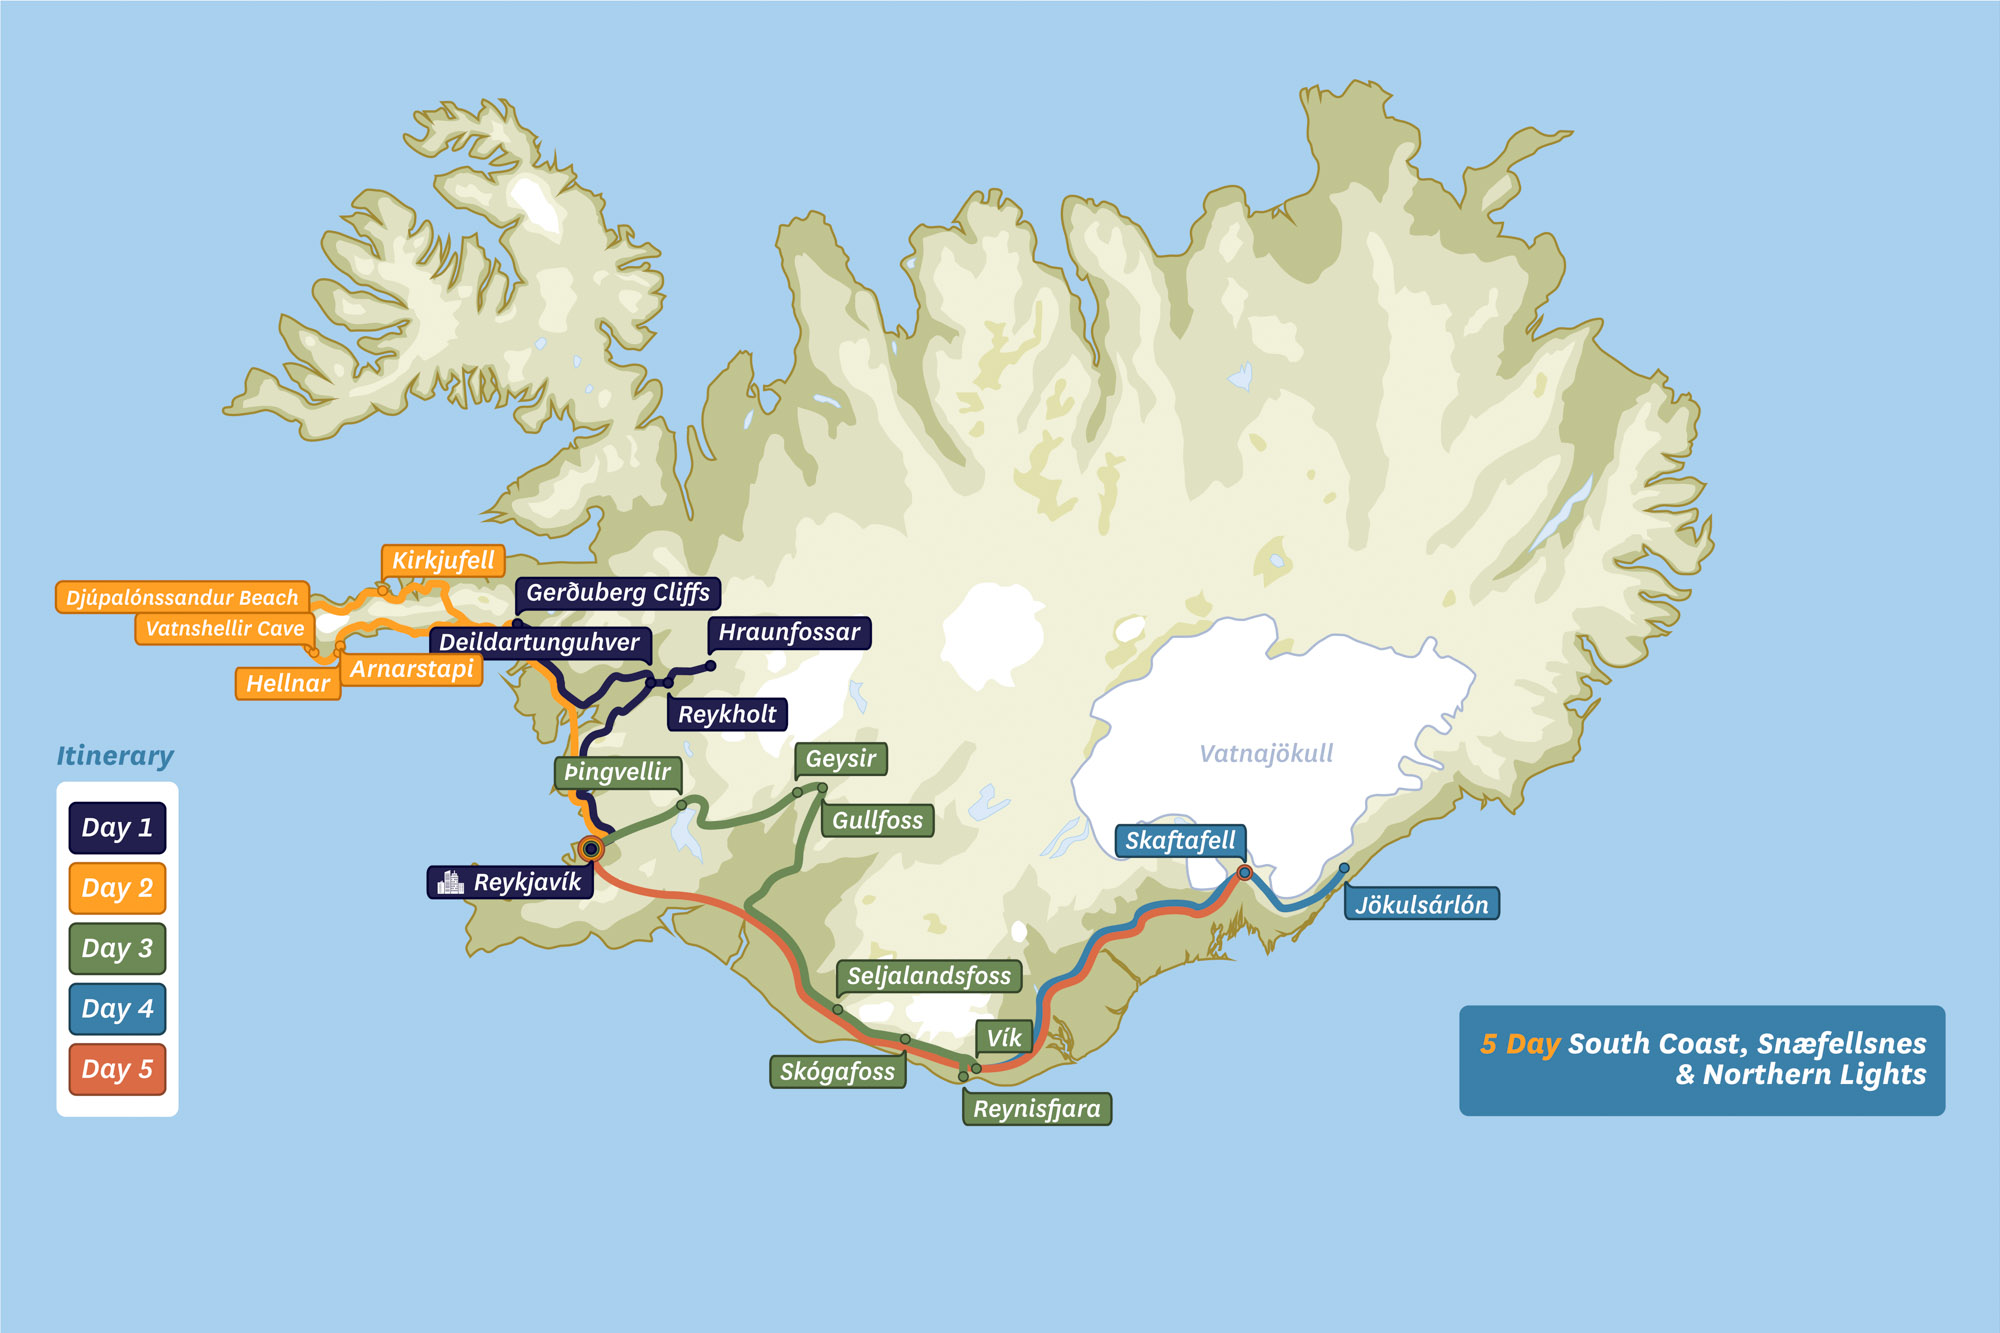 Map of Iceland - 5 Day Snaefellsnes and Northern Lights